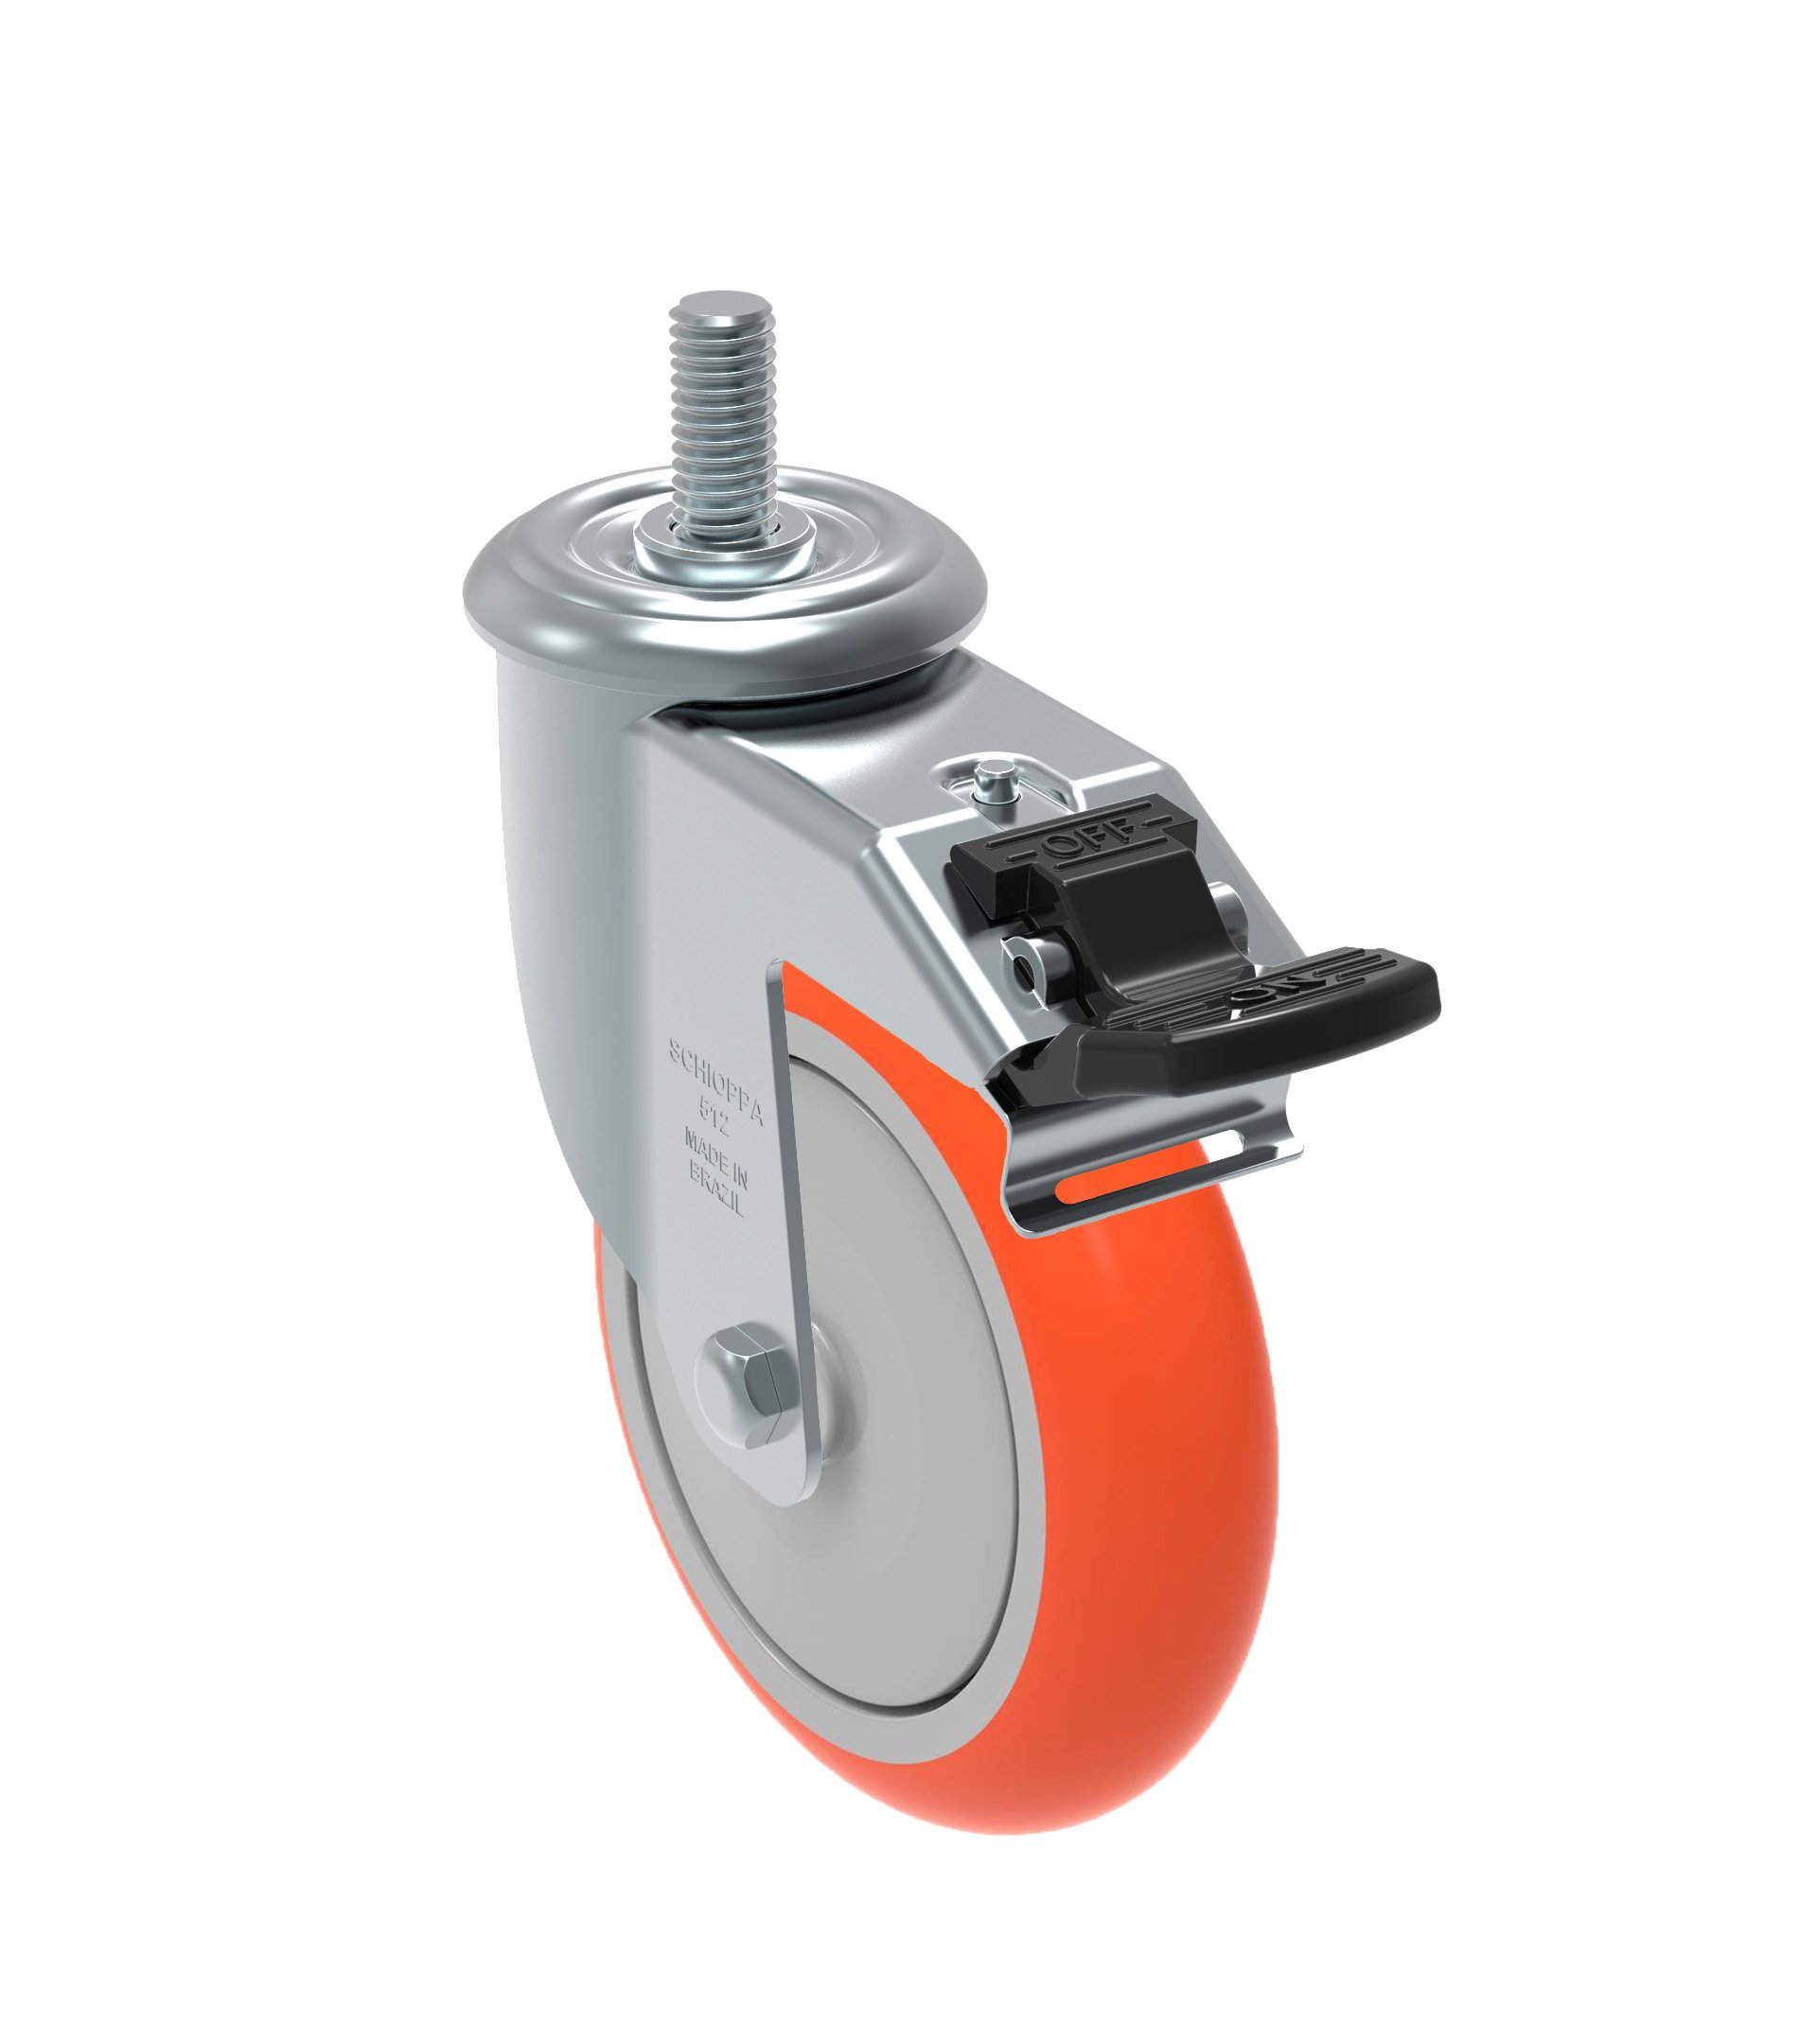 Schioppa GLEHF 512 UPE G L12 Series 5'' x 1-1/4'' Diameter Swivel Caster with Total Lock Brake, Non-Marking Polyurethane Precision Ball Bearing Wheel, 12 mm Diameter x 40 mm Length Threaded Stem, 325 lb